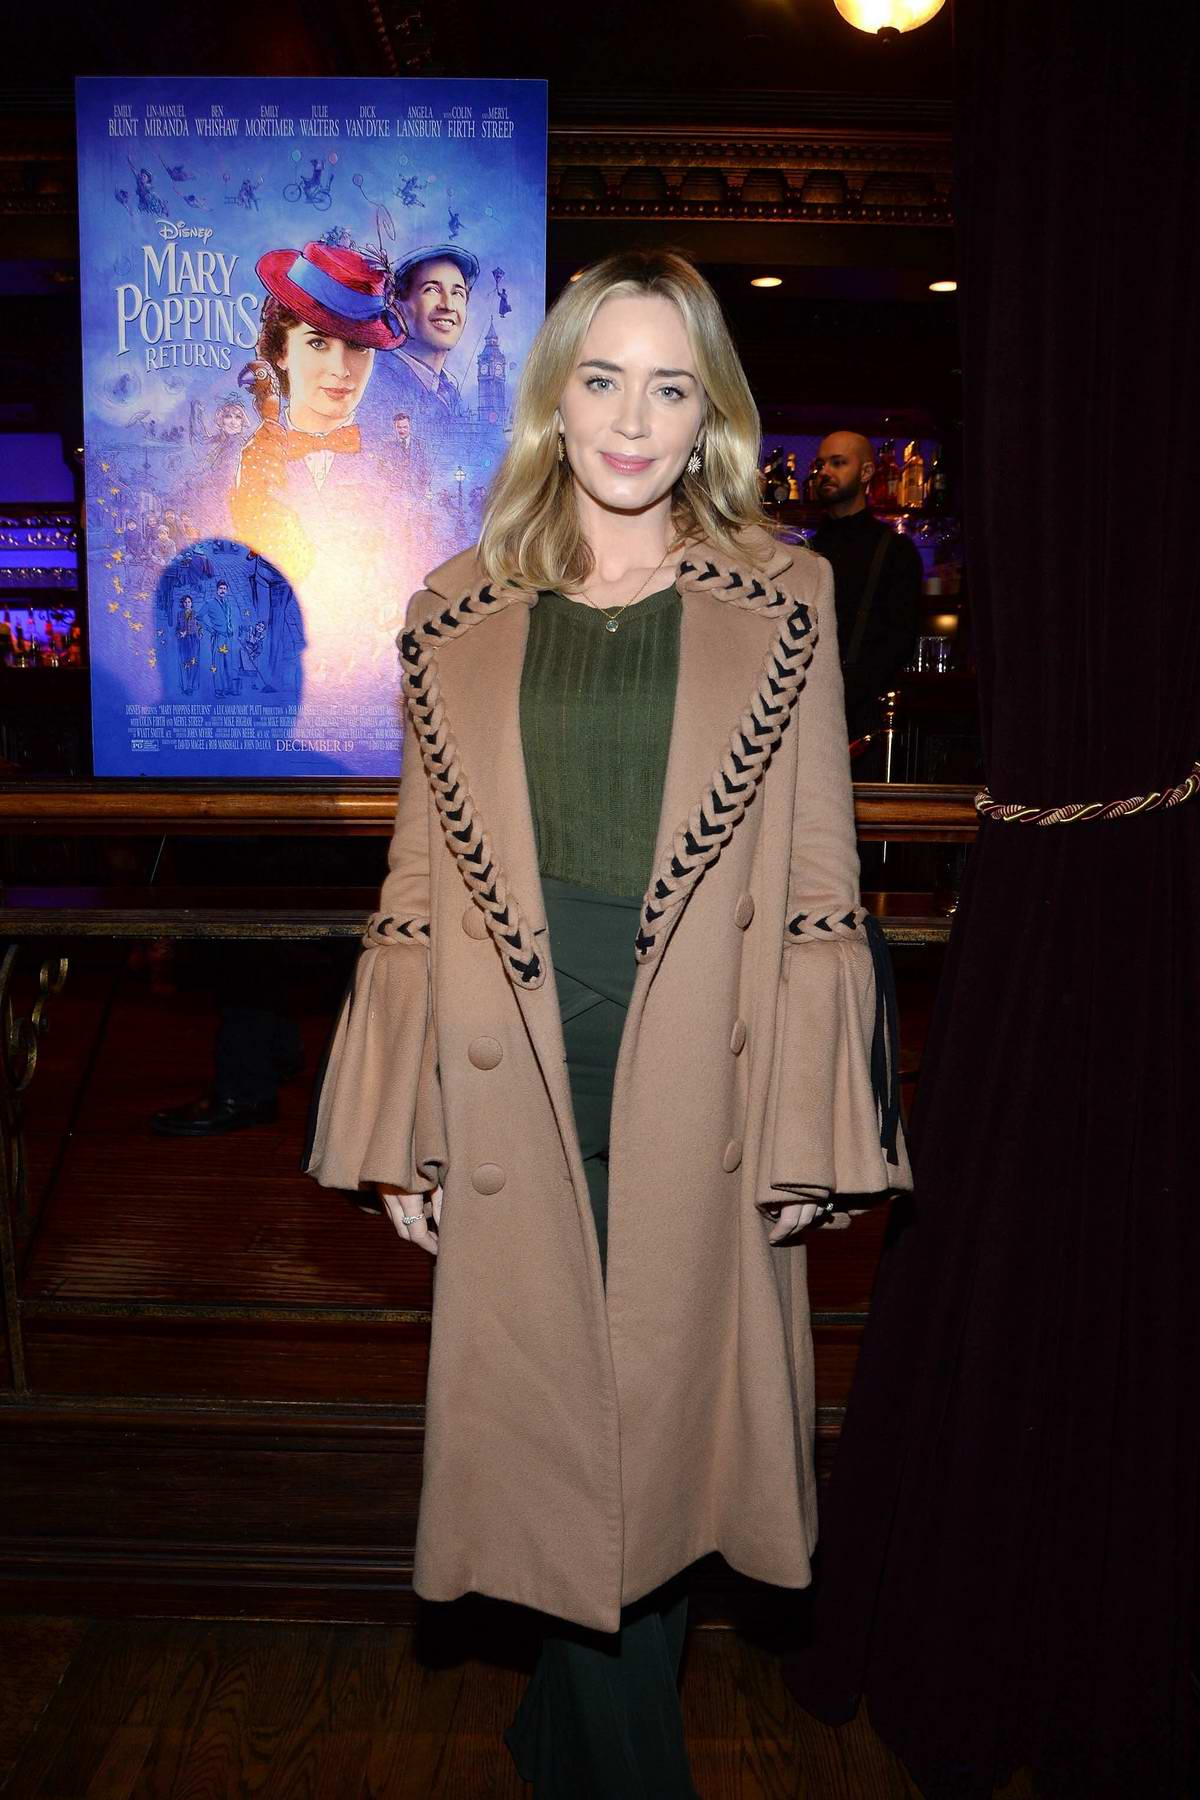 Emily Blunt attends a private screening at Feinstein's/54 Below in New York City